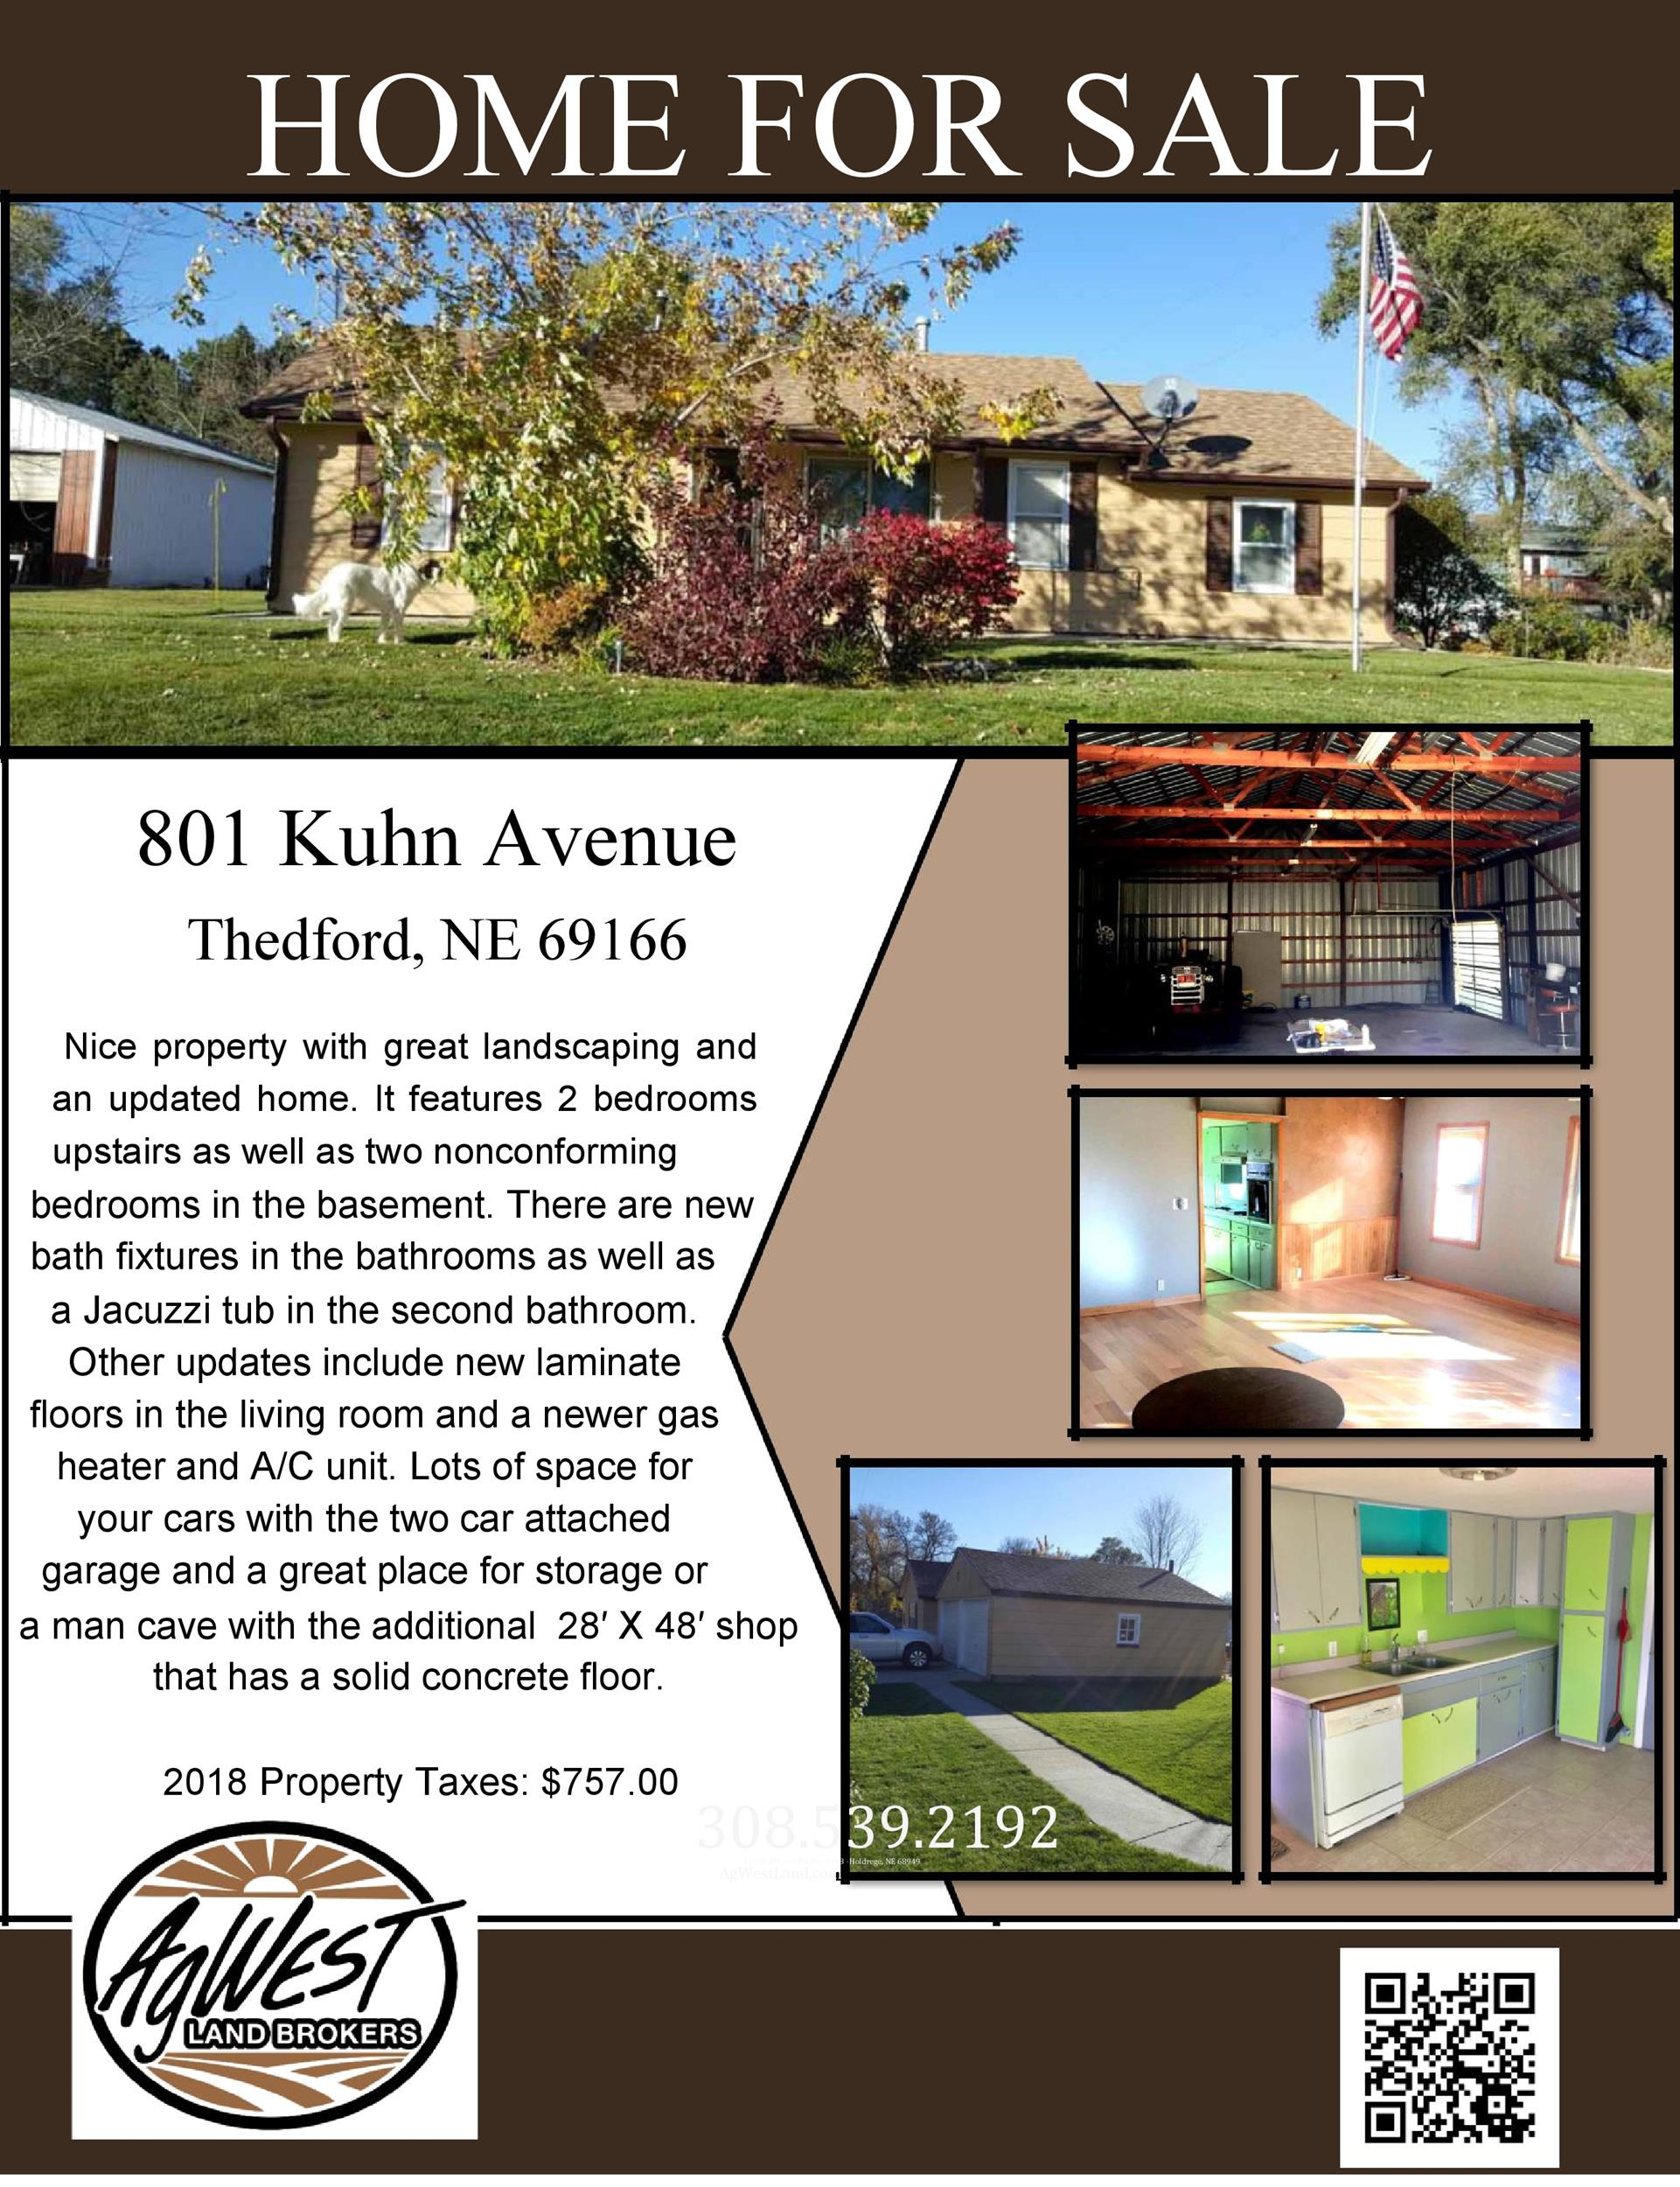 47 amazing house for sale flyers  100  free   u1405 template lab